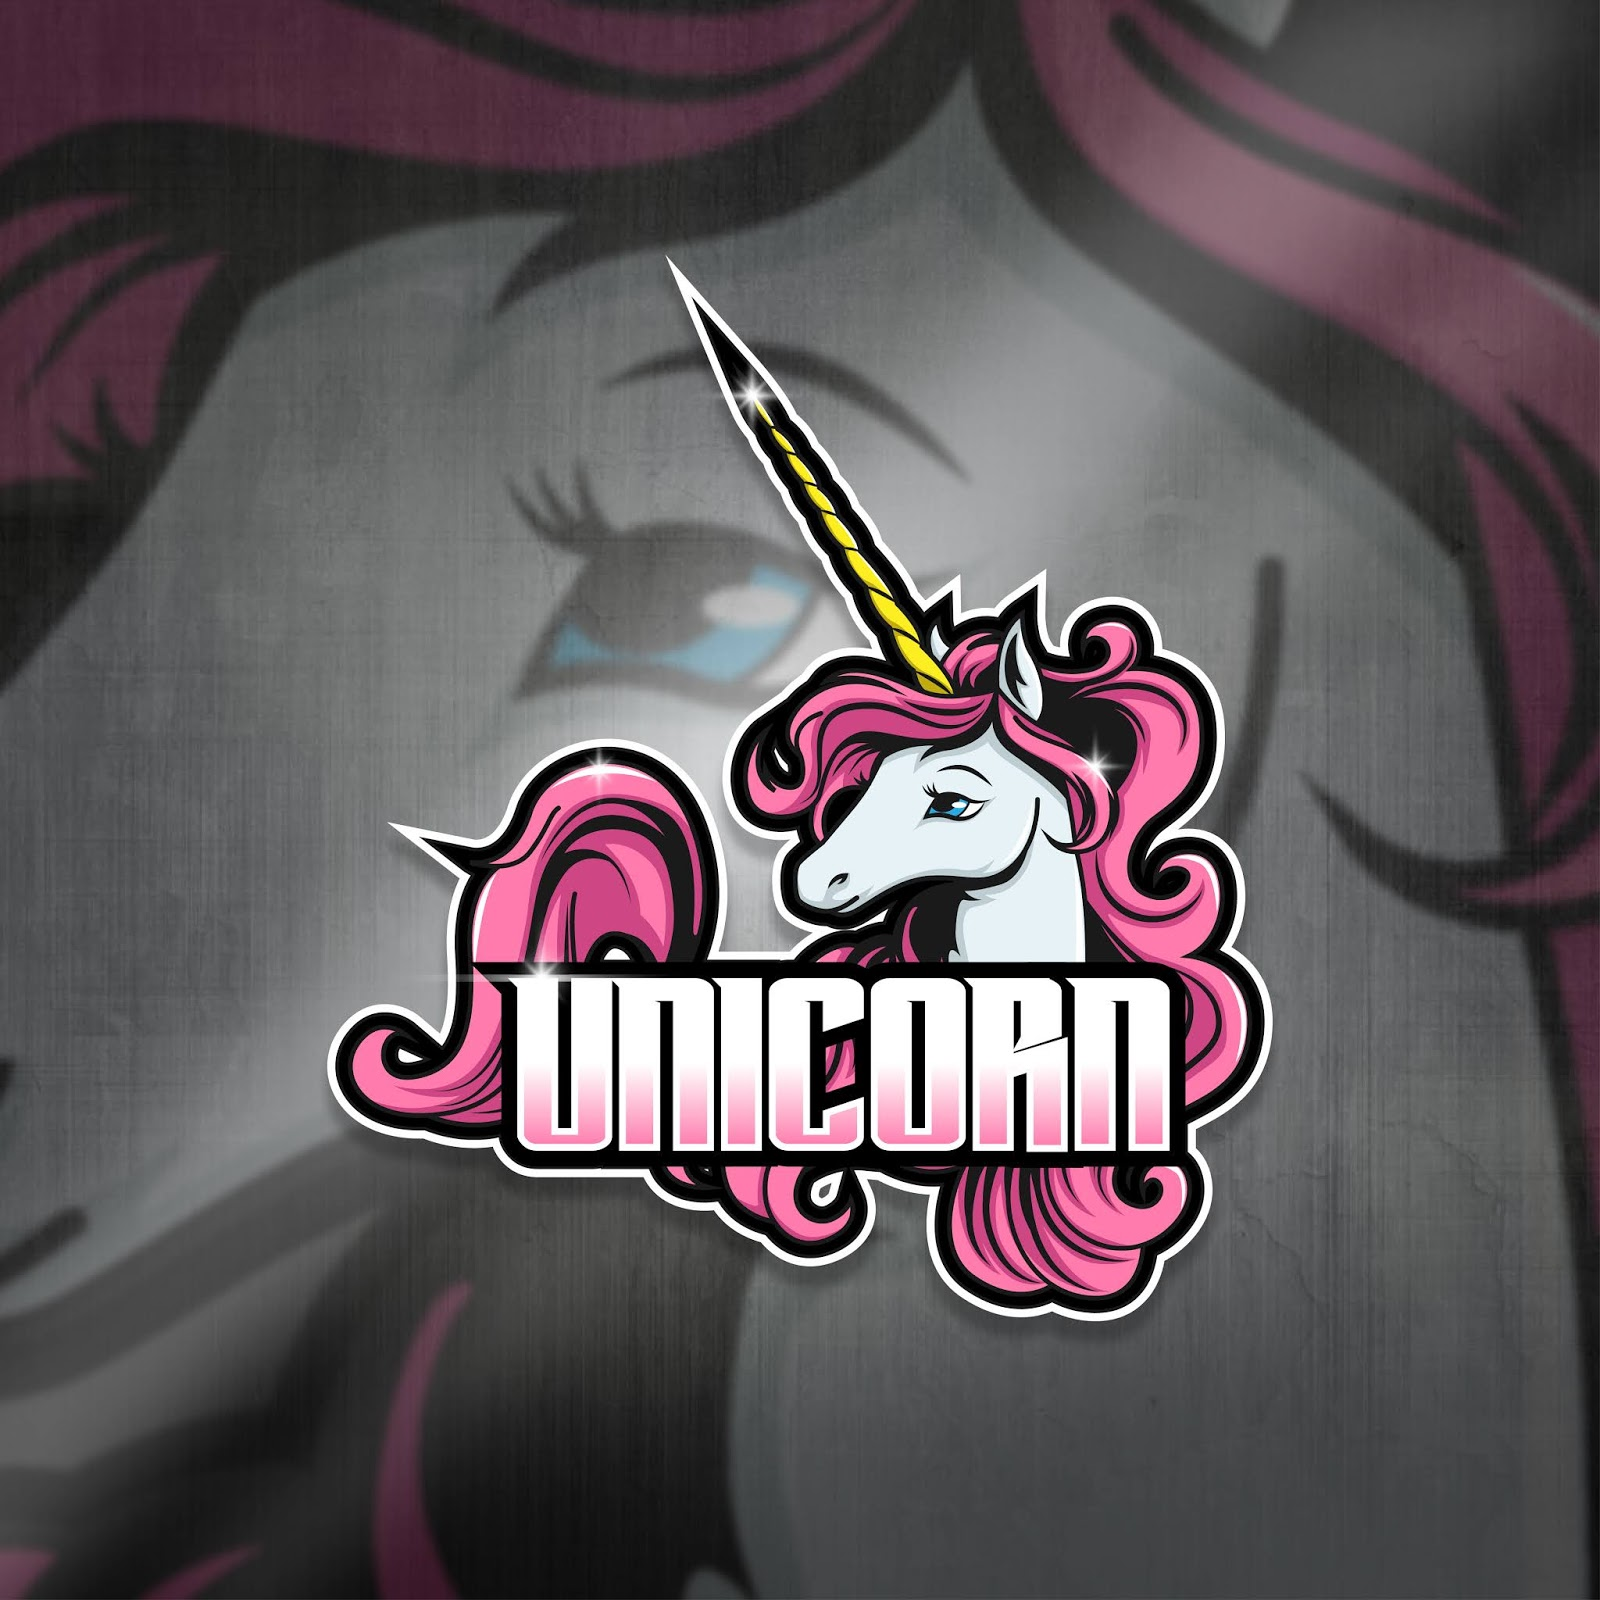 Esports Mascot Logo Team Unicorn Squad Free Download Vector CDR, AI, EPS and PNG Formats